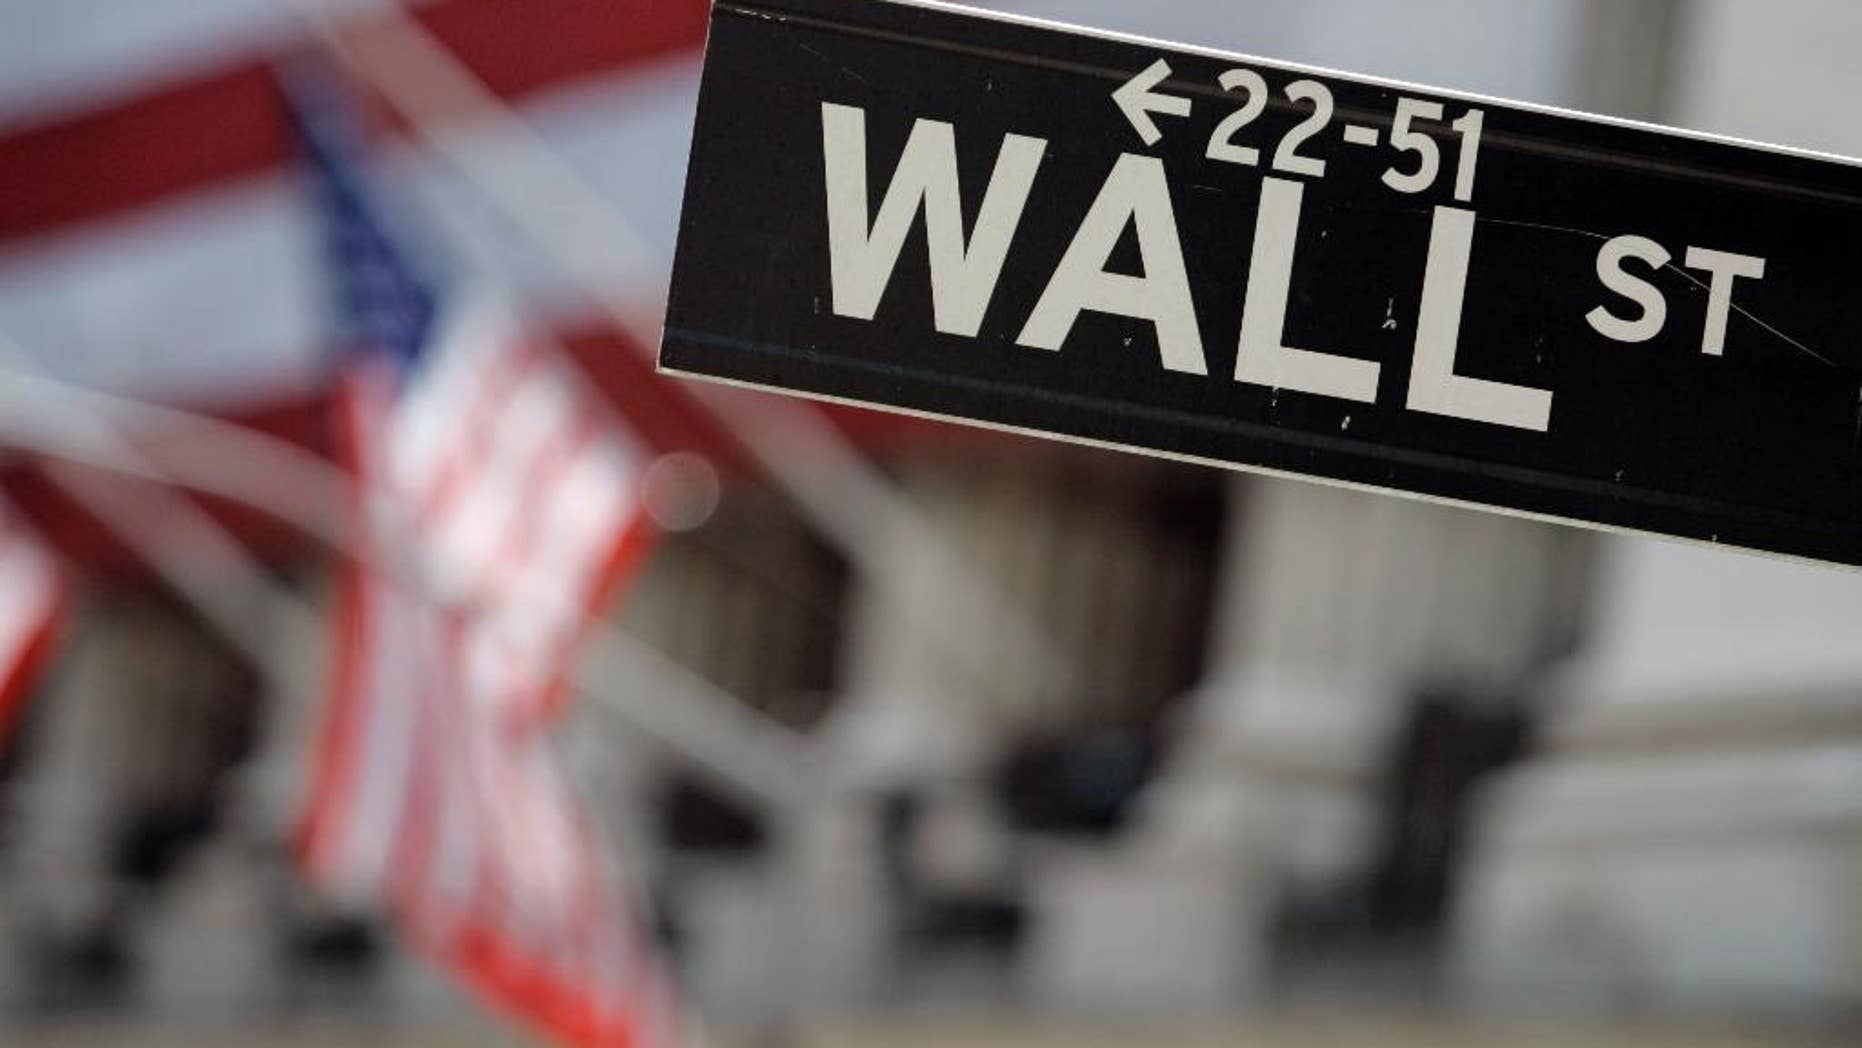 FILE - In this May 11, 2007, file photo, a Wall Street sign is mounted near the flag-draped facade of the New York Stock Exchange. Stocks are heading lower in early trading Wednesday, Oct. 1, 2014, putting the market on course for its third loss in a row. (AP Photo/Richard Drew, File)